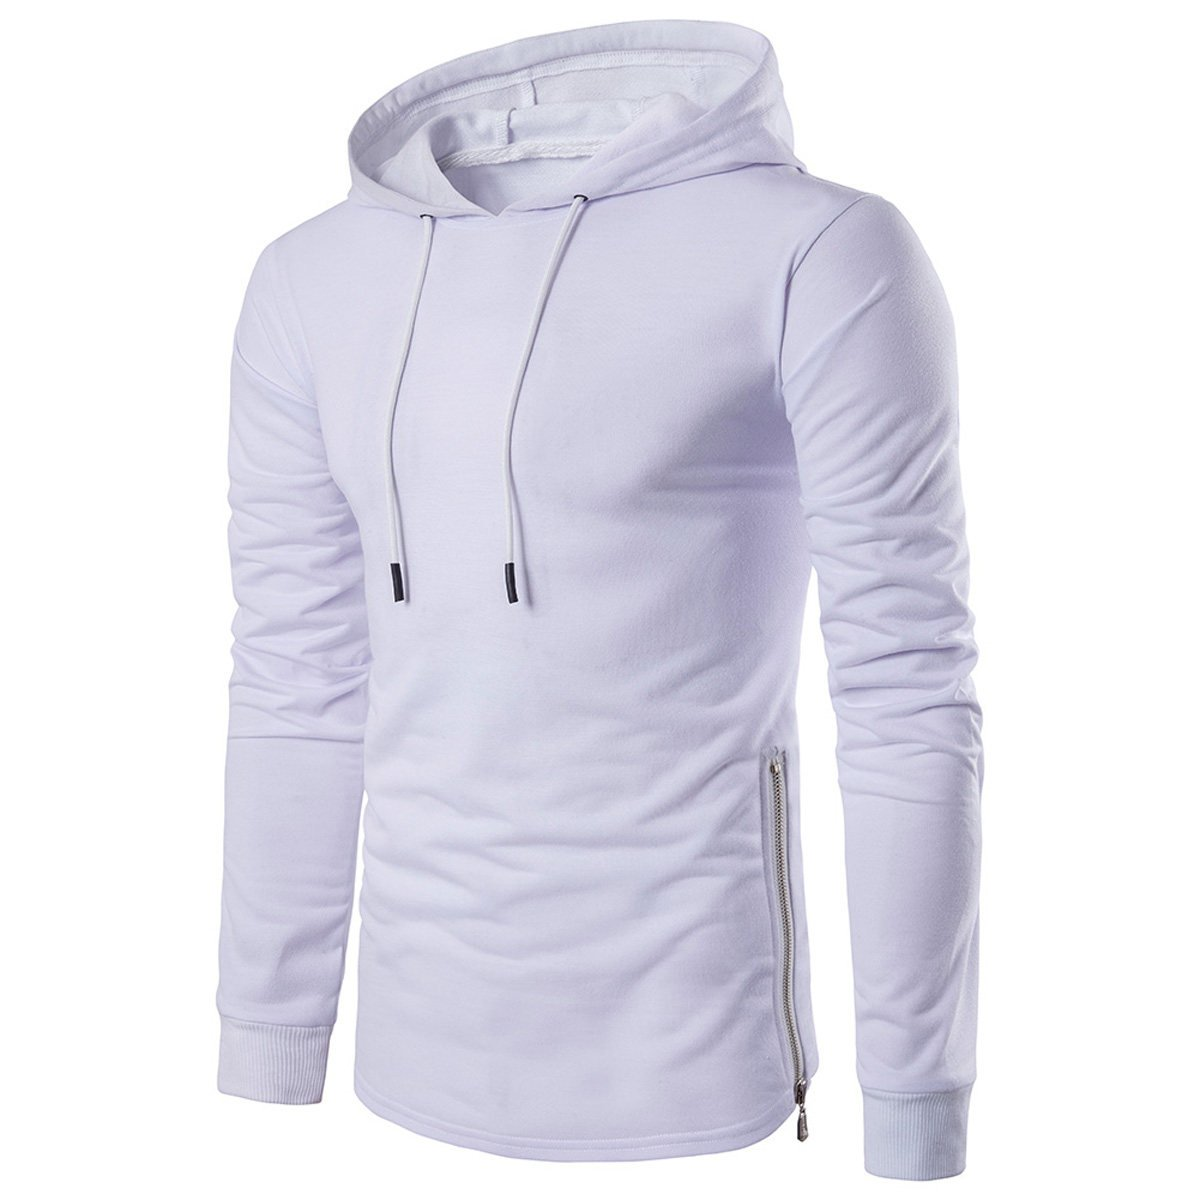 JINGLIYA Jeune Homme Mode Couleur Unie All-match Simple Manches Longues  Grande Taille Pull-over Sweat à Capuche Sweat-shirt  Amazon.fr  Vêtements  et ... e540b8734671